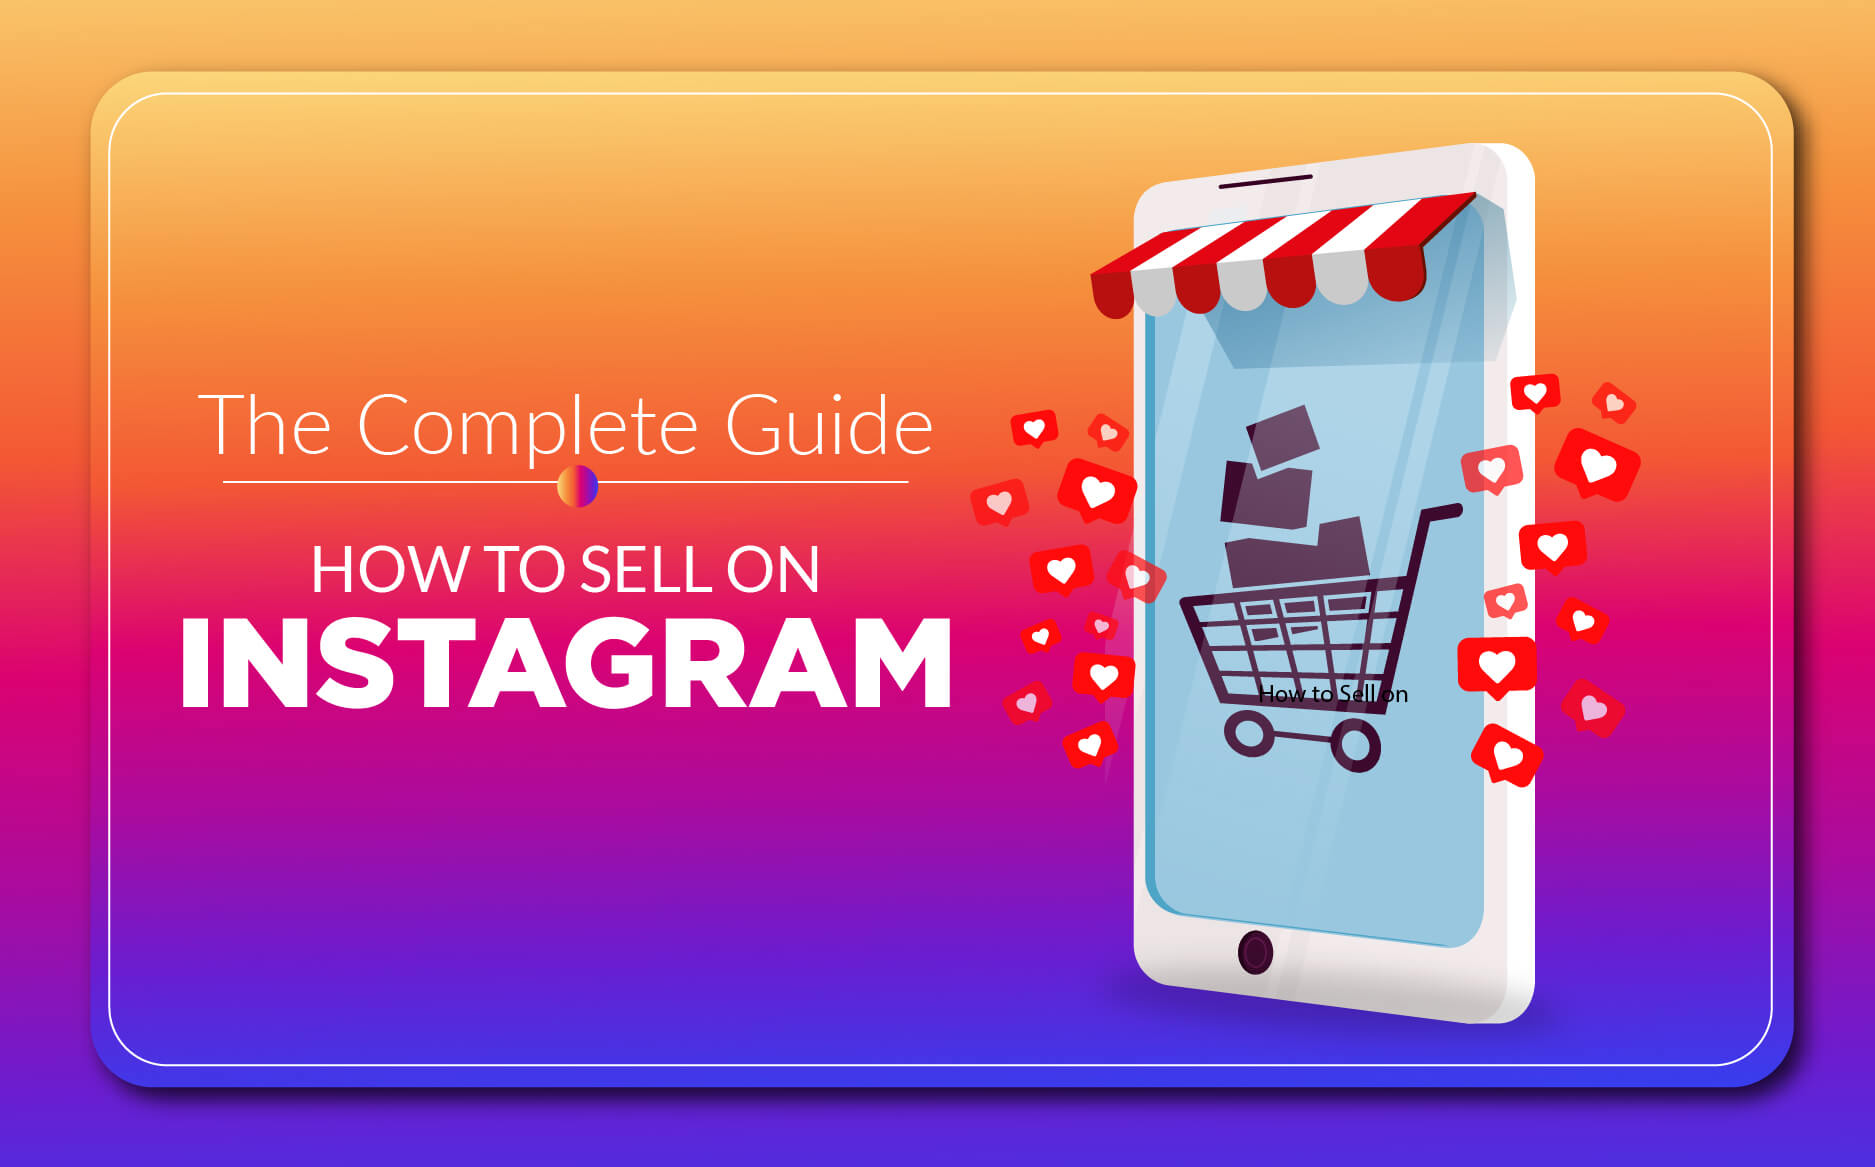 The Complete Guide On How To Sell On Instagram | The Money Gig